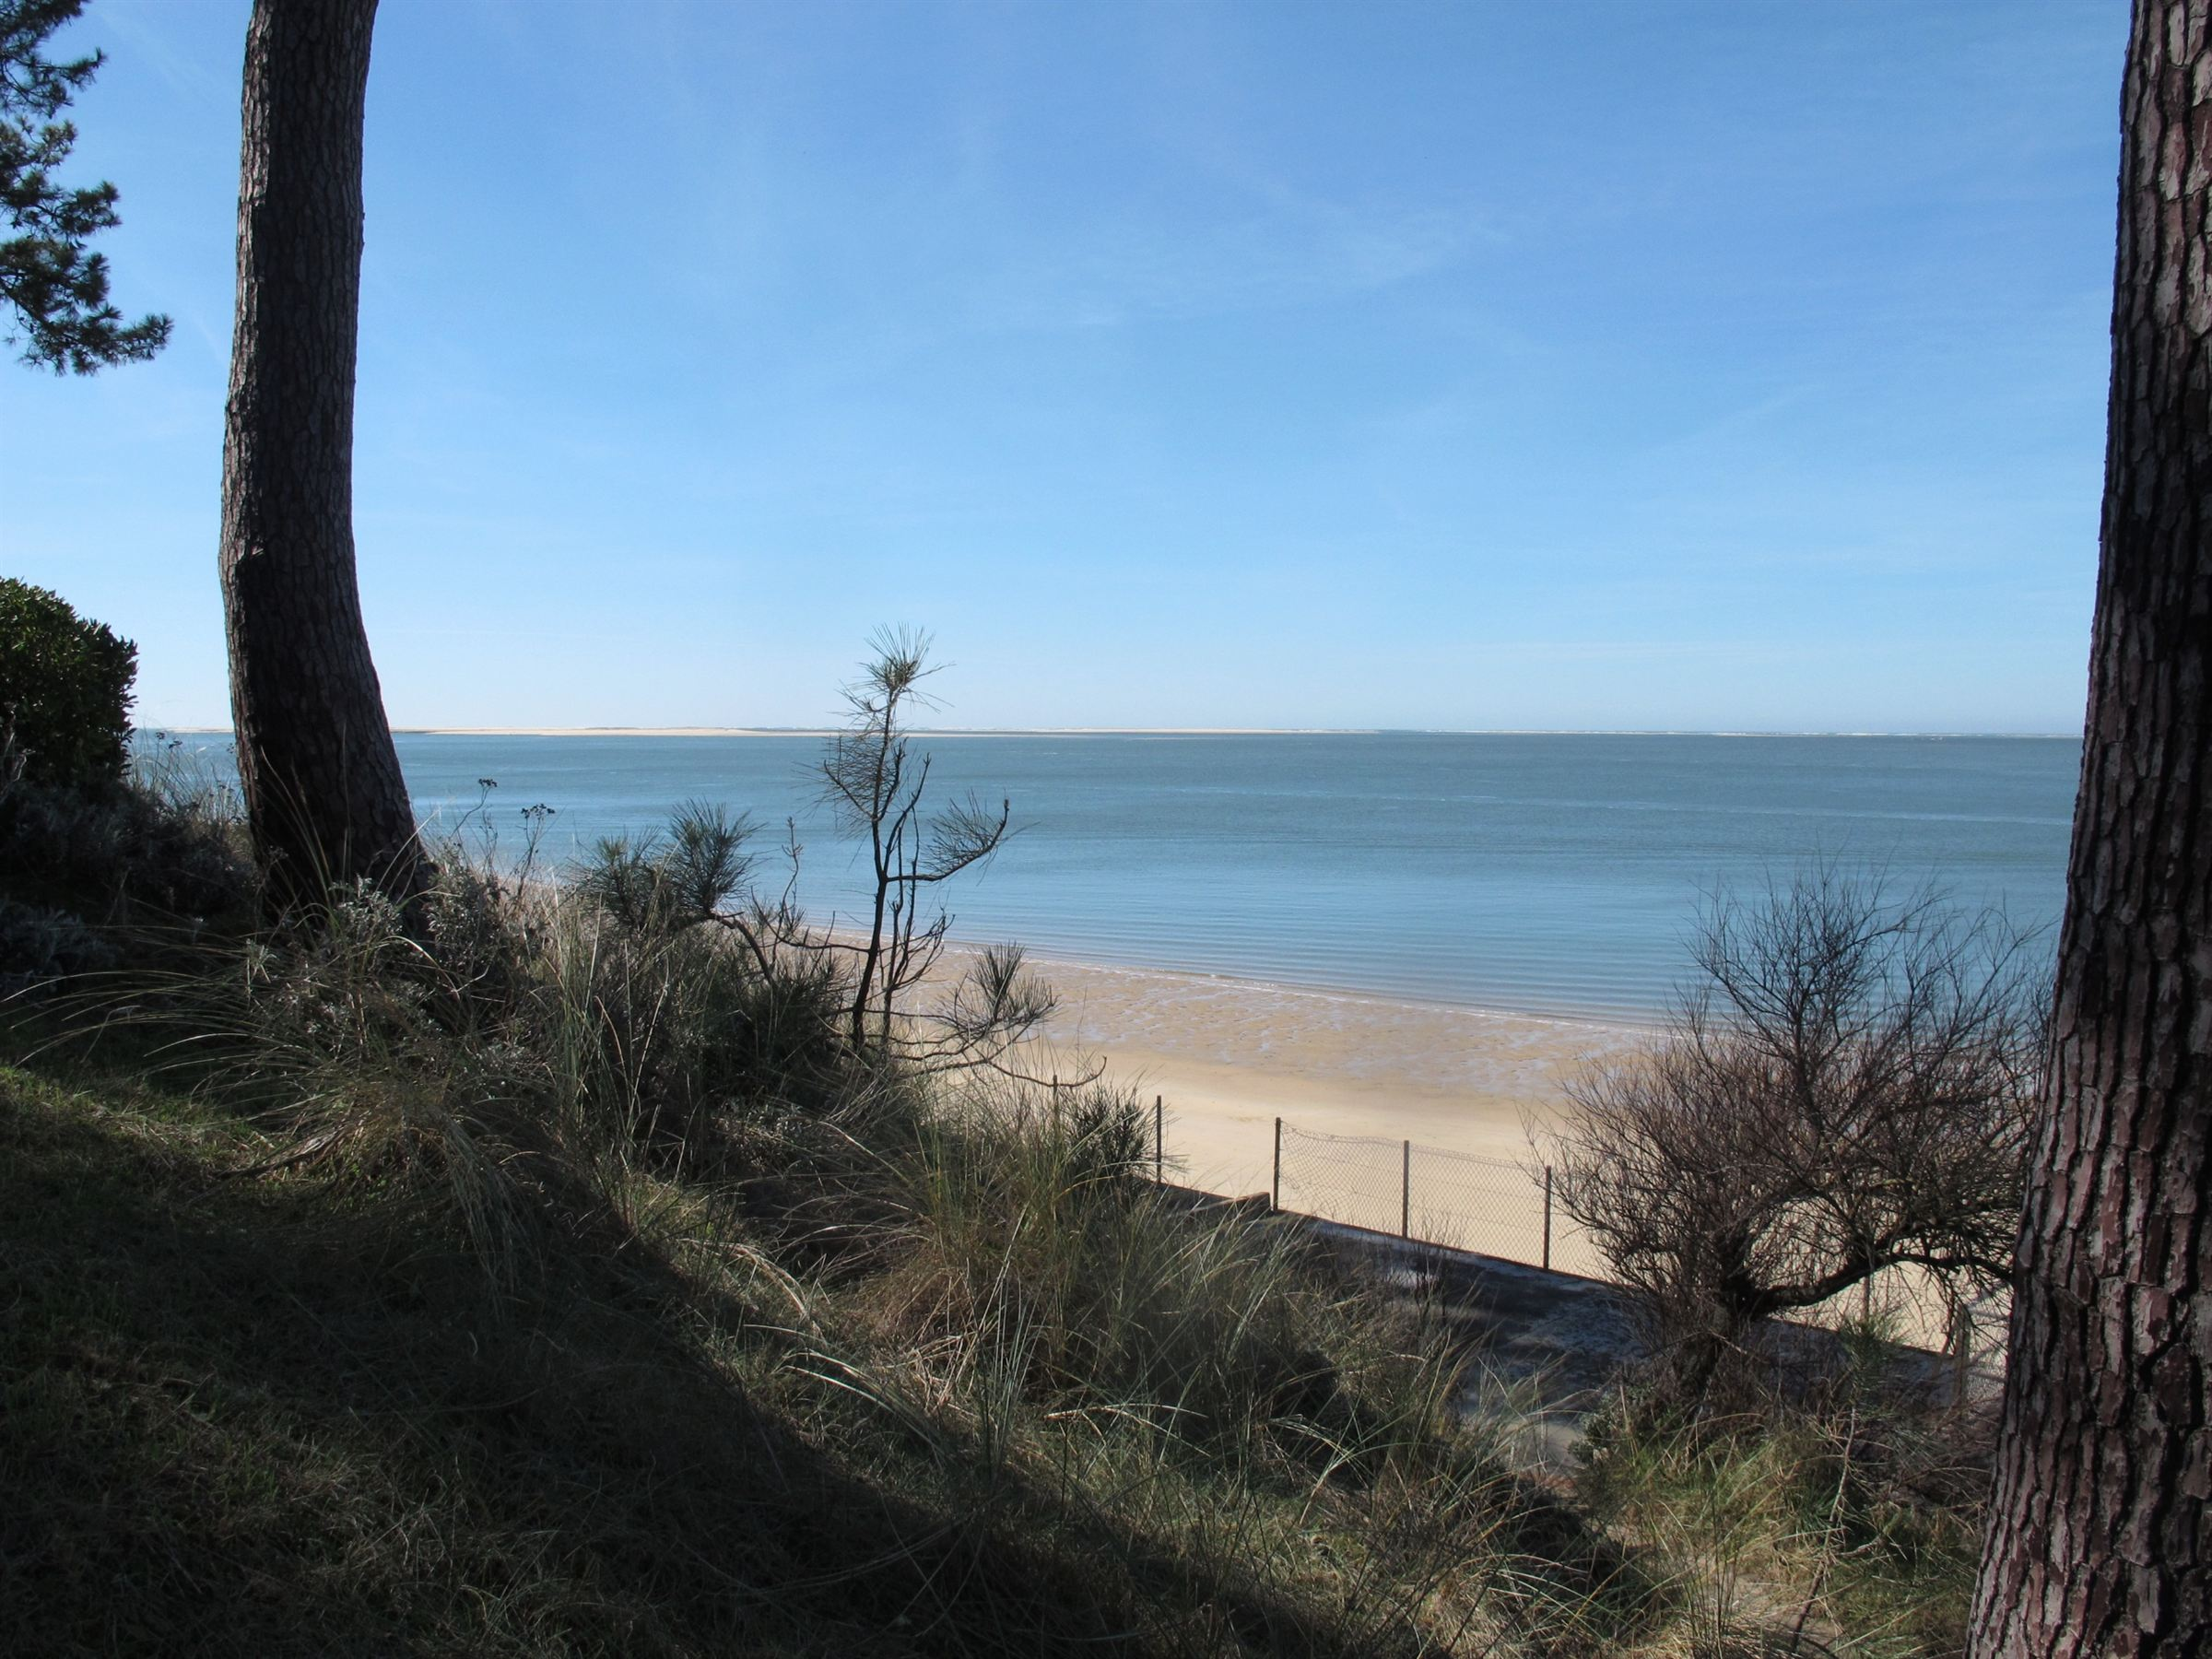 Property For Sale at ARCACHON BAY - PYLA - FRONT LINE SUMMER HOUSE